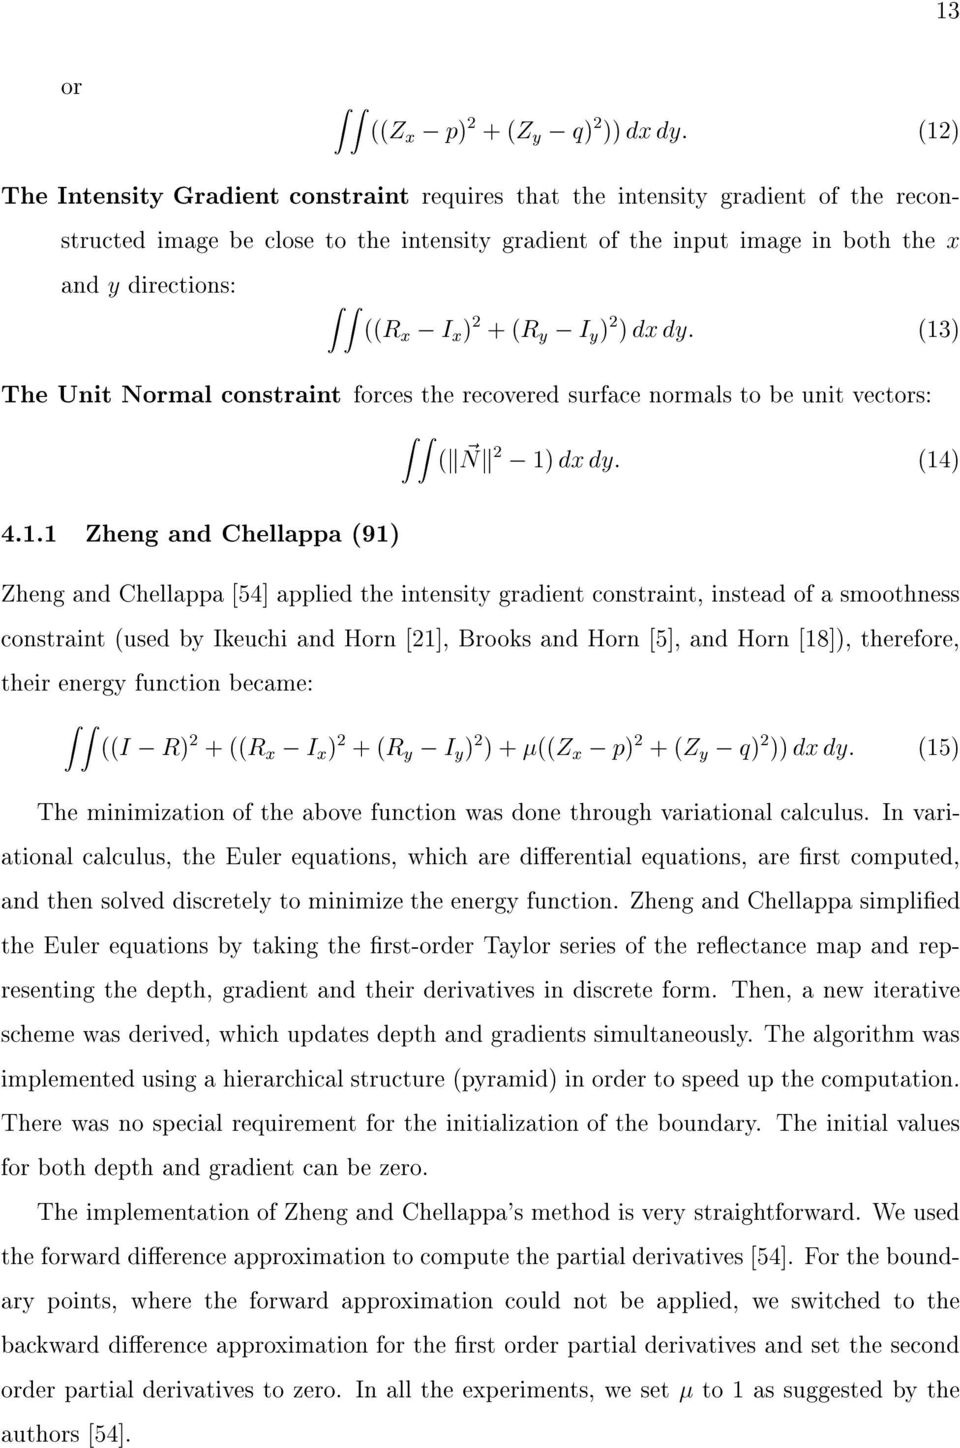 (14) 4.1.1 Zheng and Chellappa (91) Zheng and Chellappa [54] applied the intensity gradient constraint, instead of a smoothness constraint (used by Ikeuchi and Horn [21], Brooks and Horn [5], and